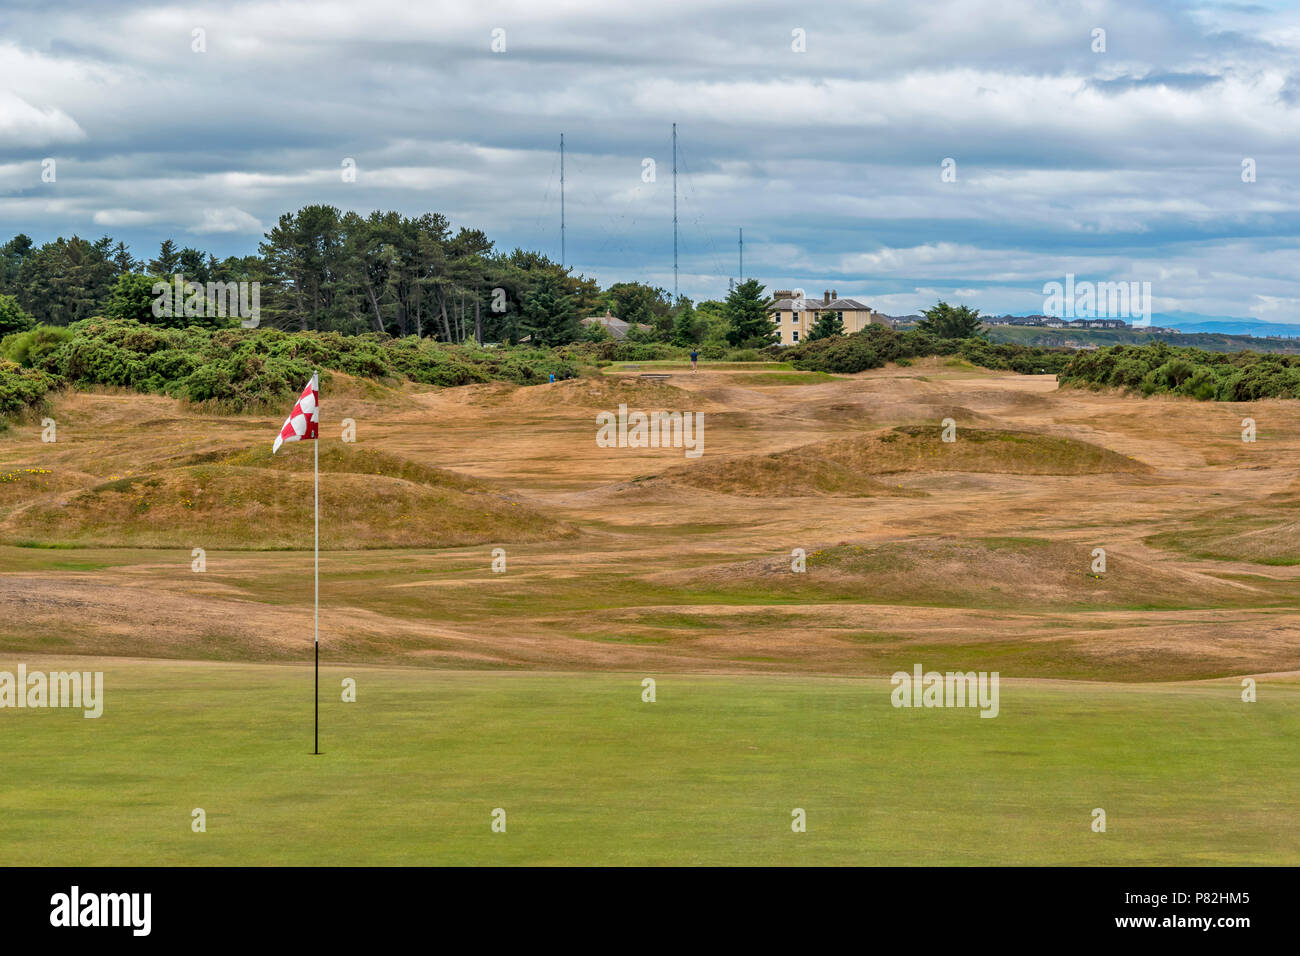 HOPEMAN MORAY SCOTLAND GOLFERS ON A VERY DRY GOLF COURSE DUE TO HOT SUMMER AND LACK OF WATER - Stock Image